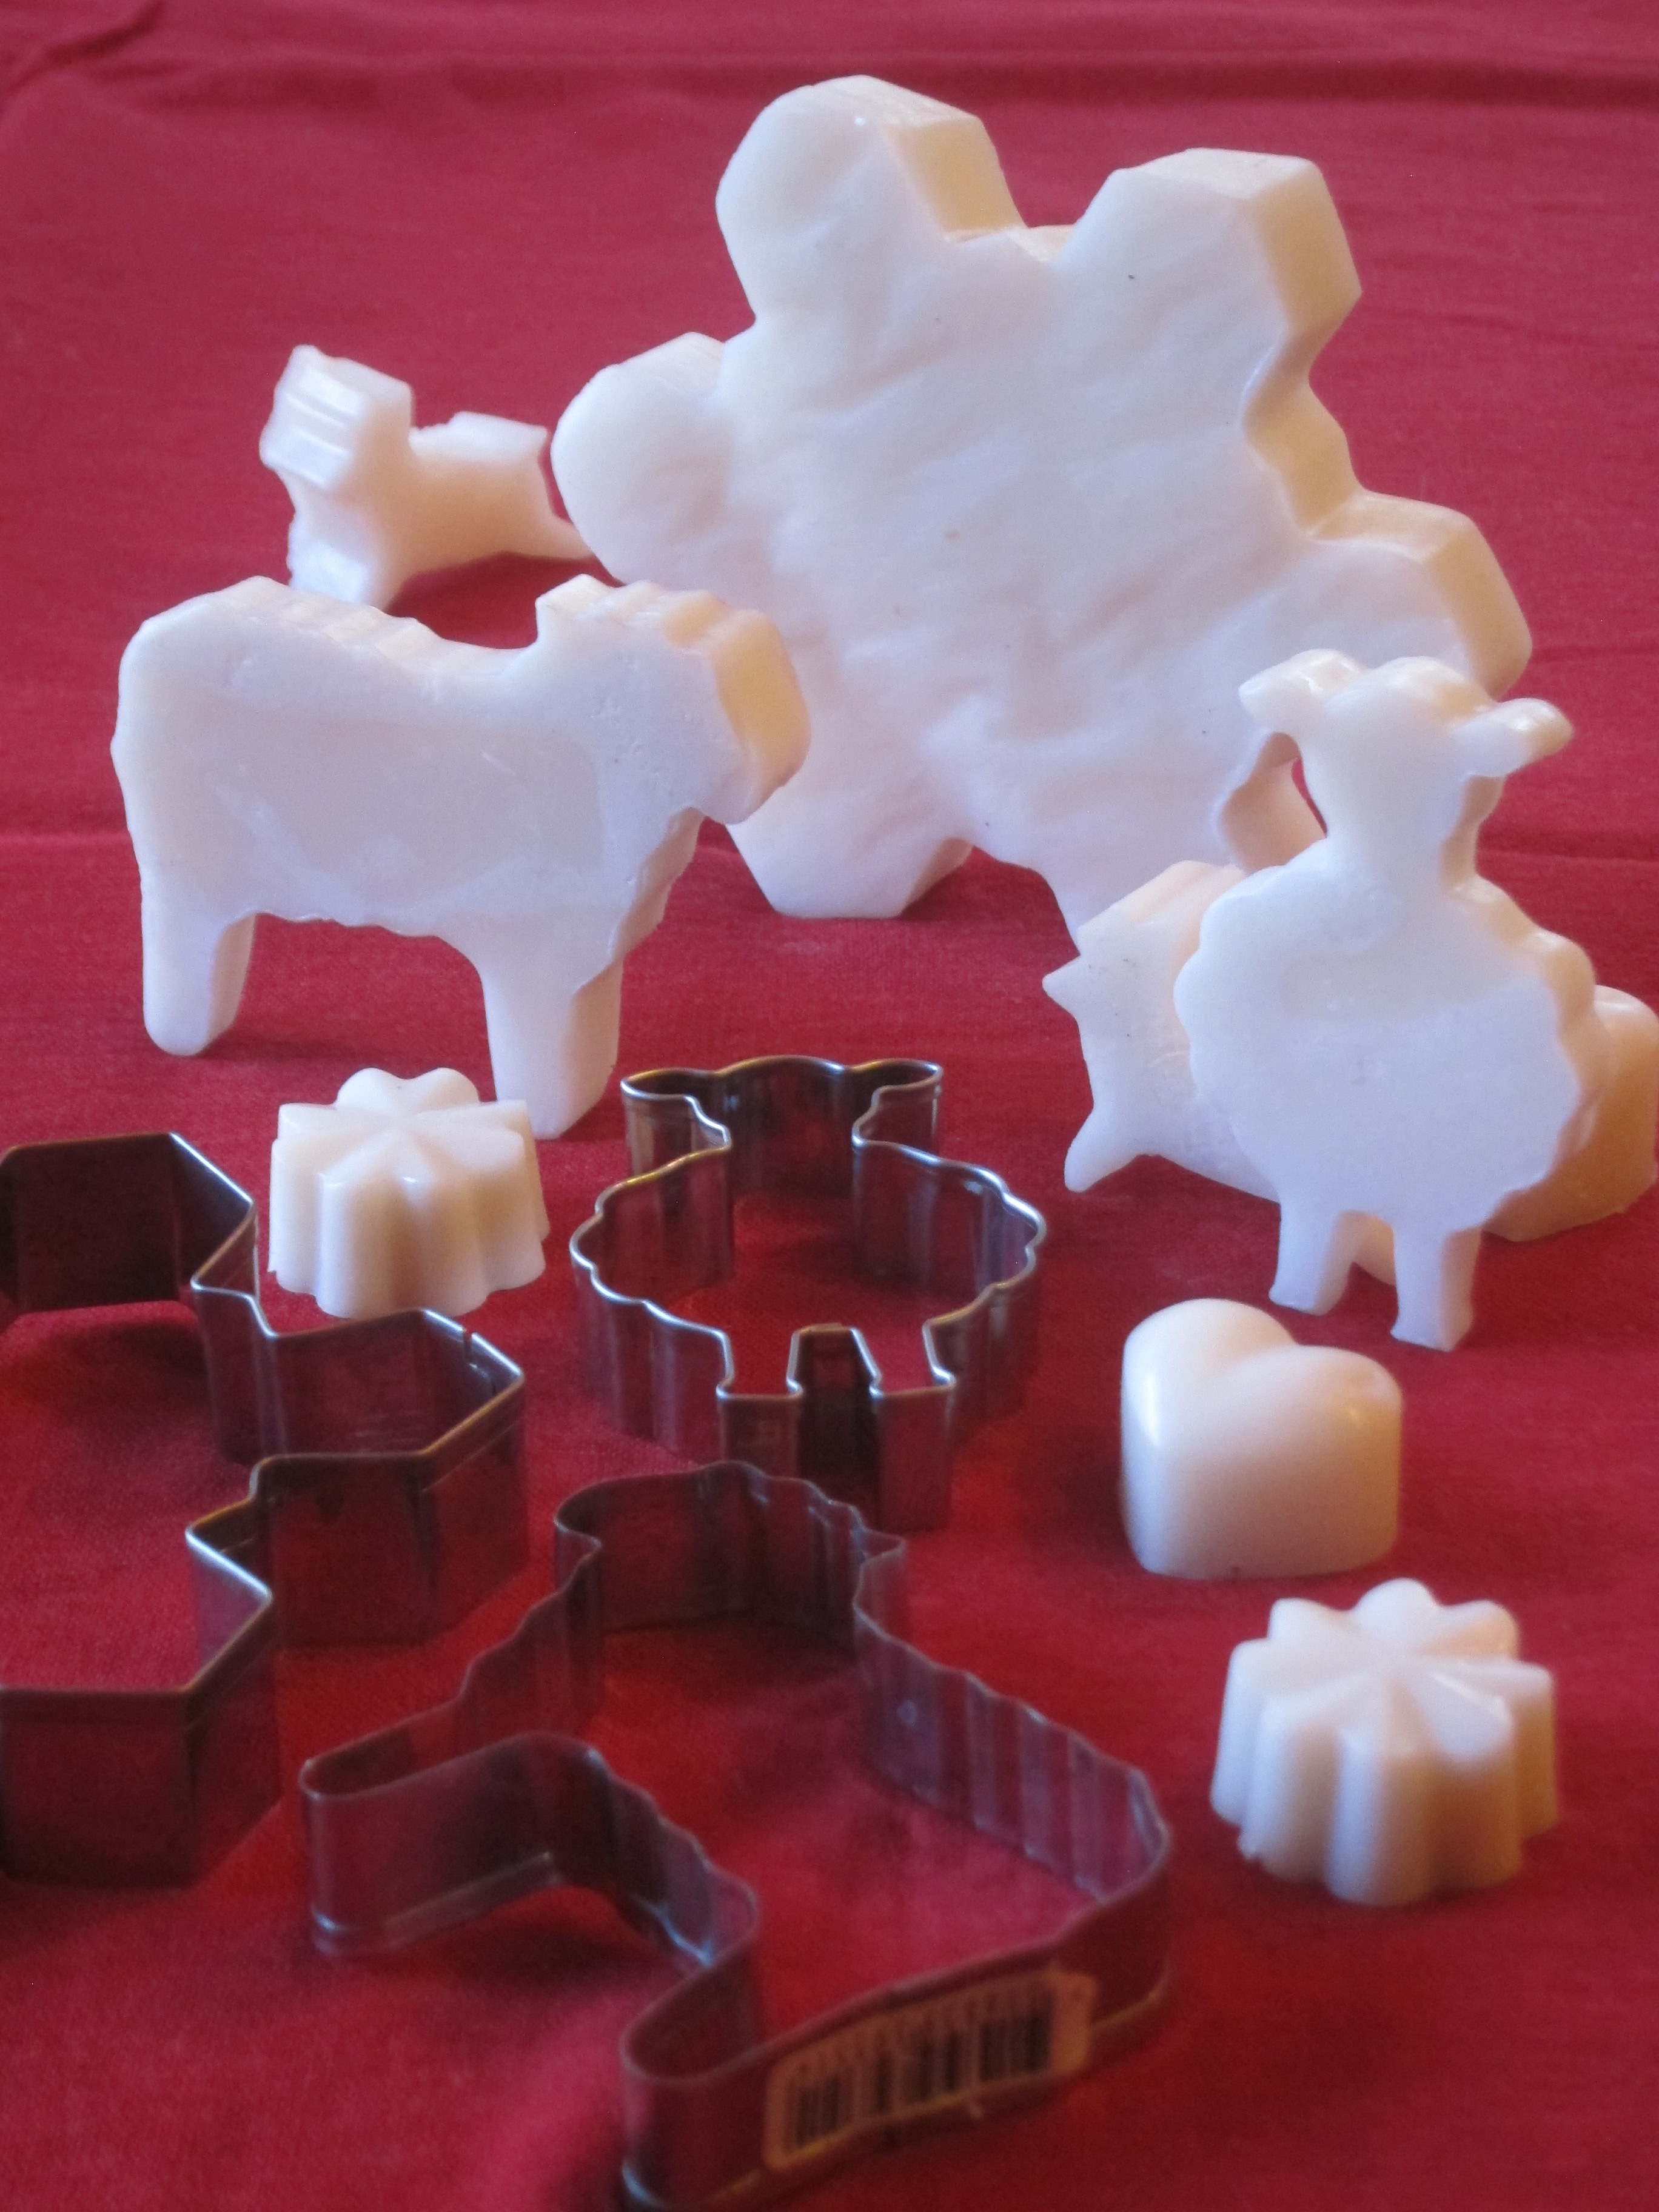 DIY Gift Making: Melt and Pour Soap